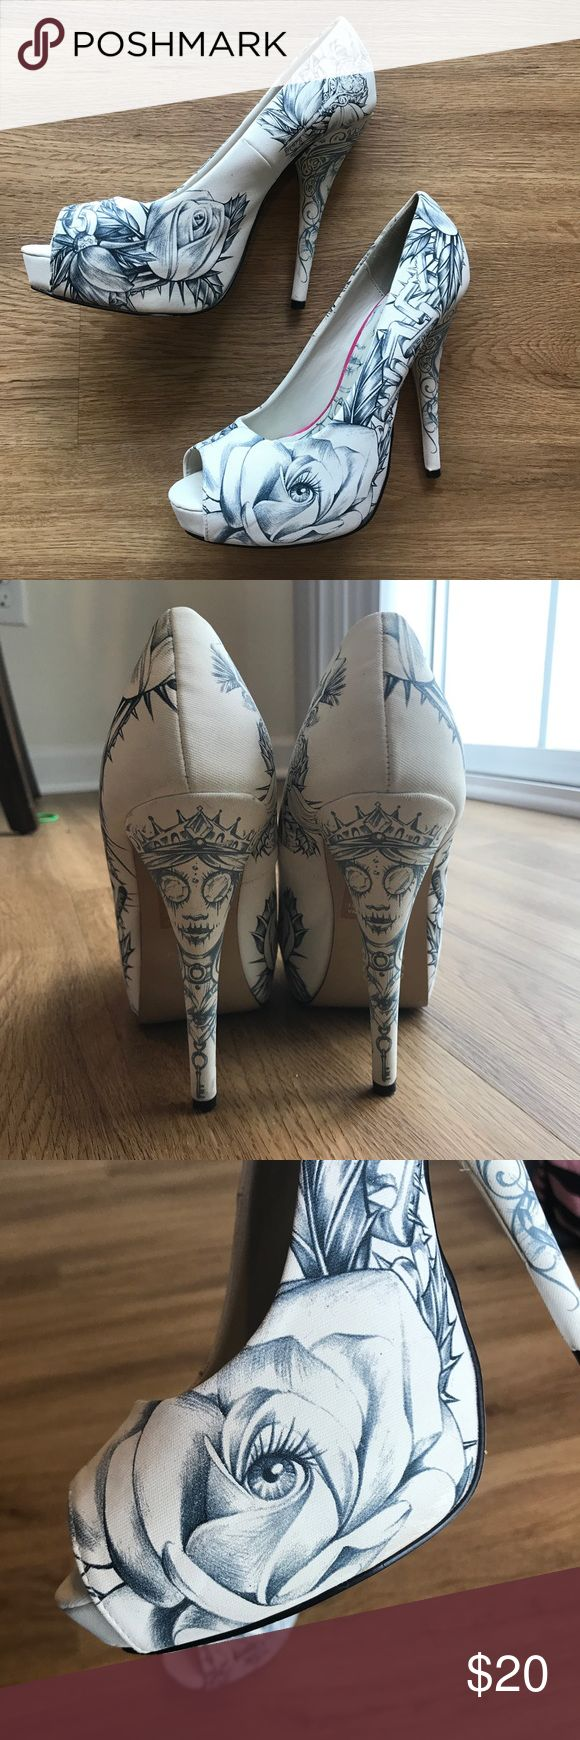 "Iron Fist Pumps super rad, tattoo like sketch design, iron fist pumps. never worn outside, only inside when trying on clothes. porcelain white with blue based grey sketches of roses, chains, keys eye, and a face. tall heel with about 1"" platform at toe. US 10, says EUR 41, but they are definitely a 40, or they just run really small. super special to me, if you're are genuinely interested, comment an offer and i will reply Iron Fist Shoes Heels"